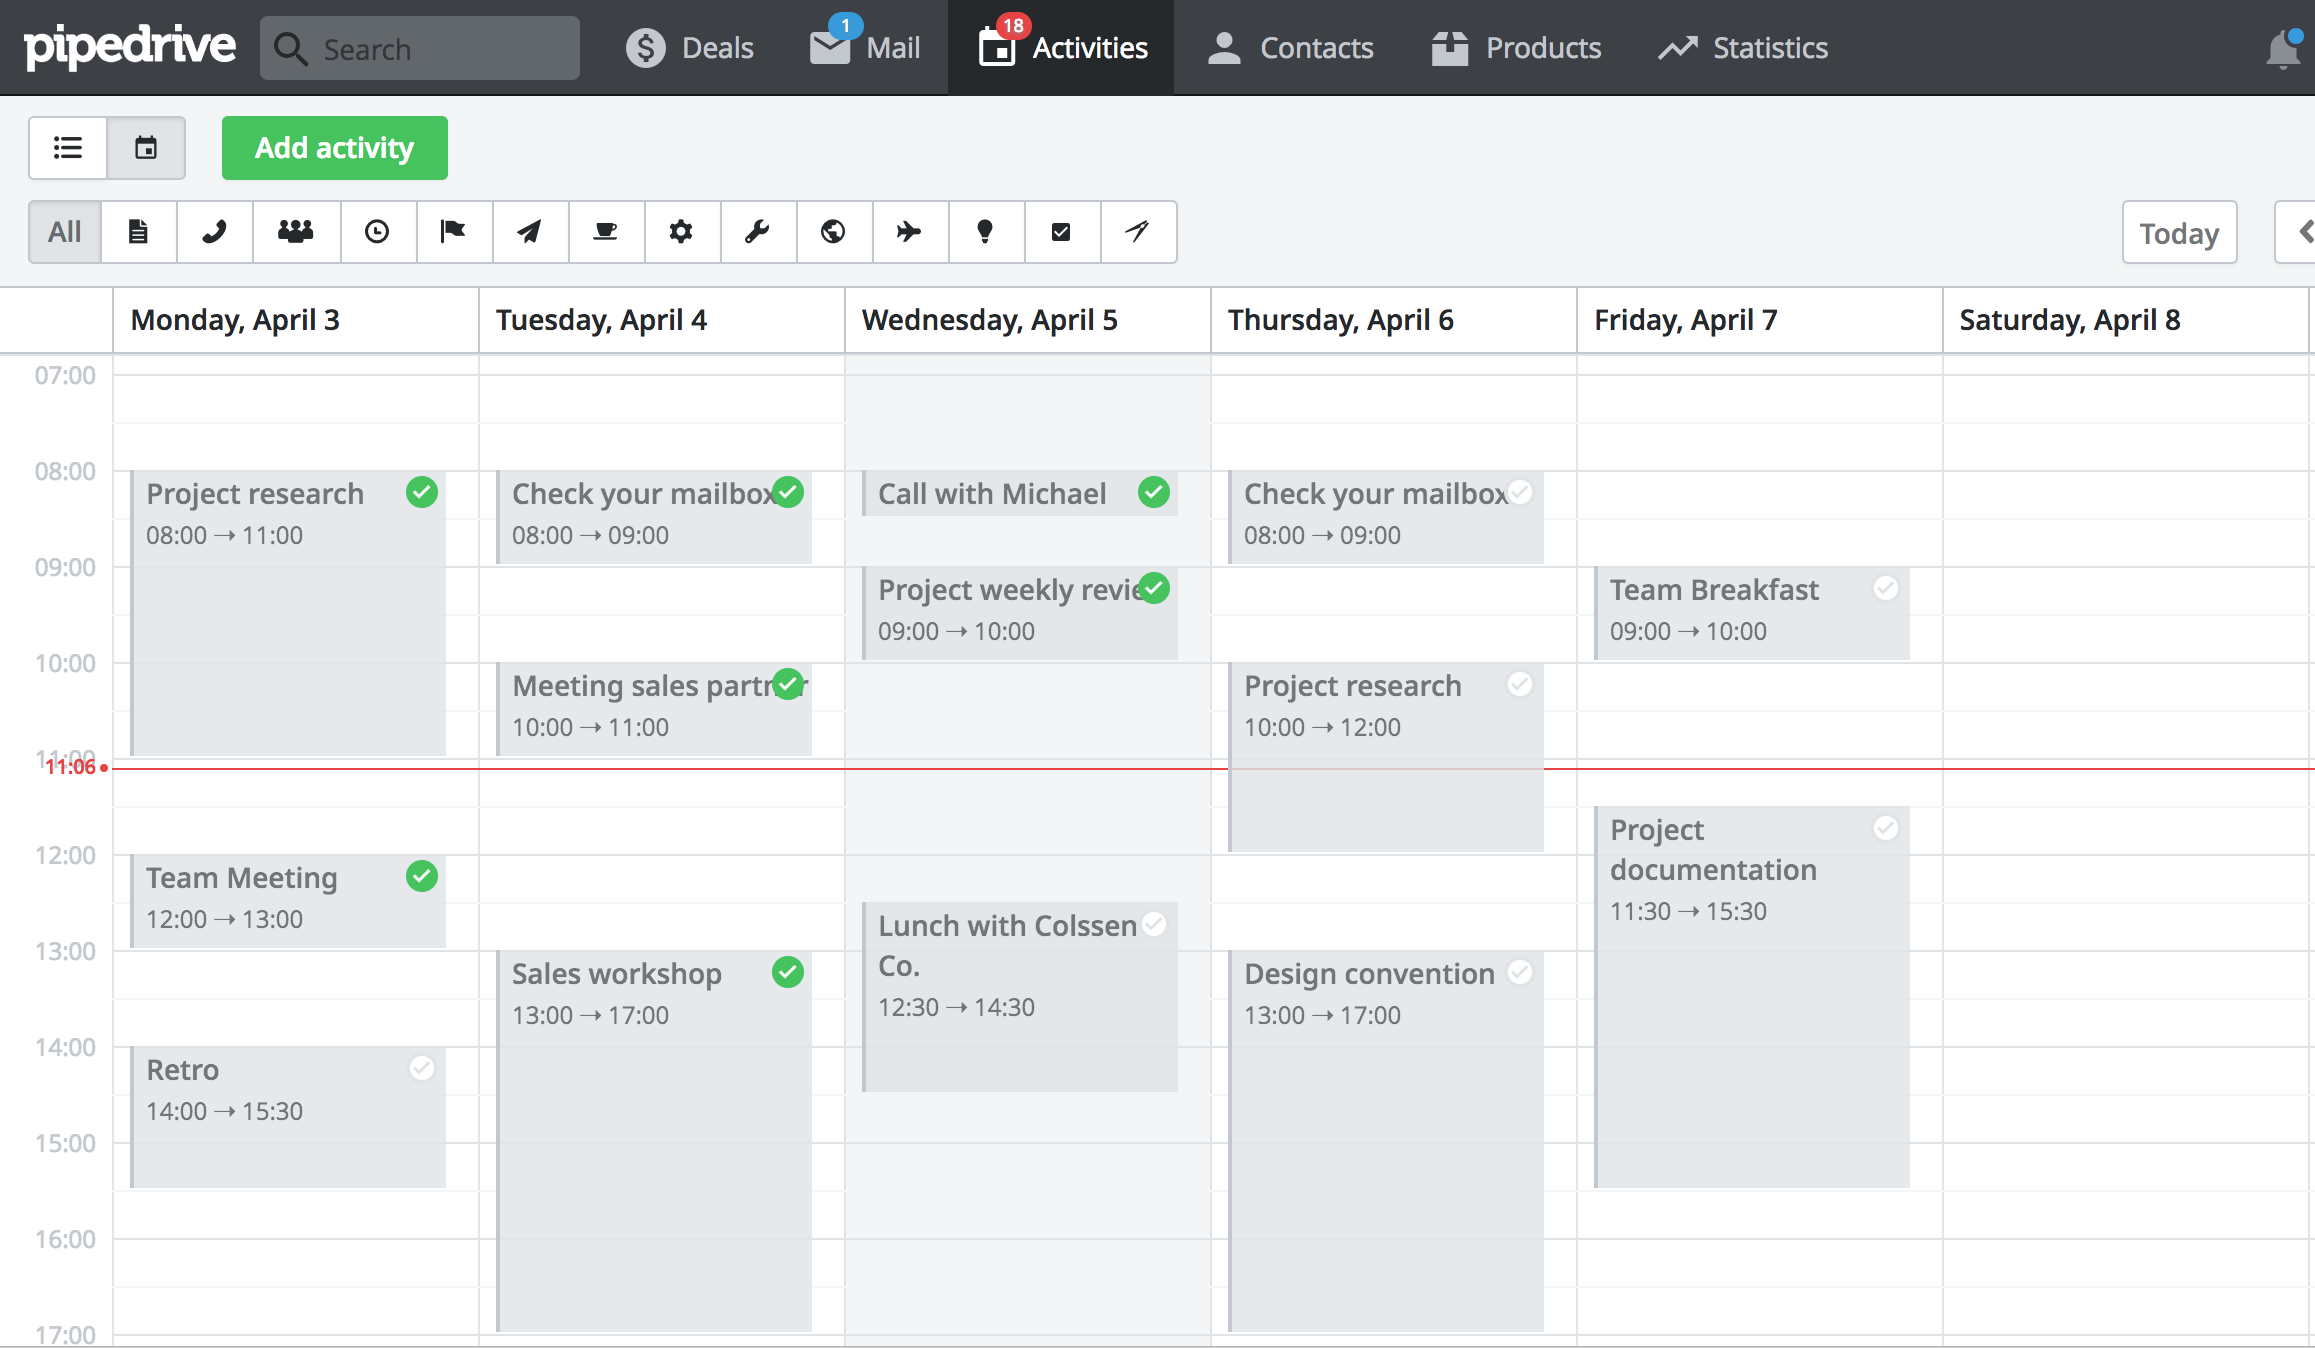 Scheduled activities in calendar view in pipedrive